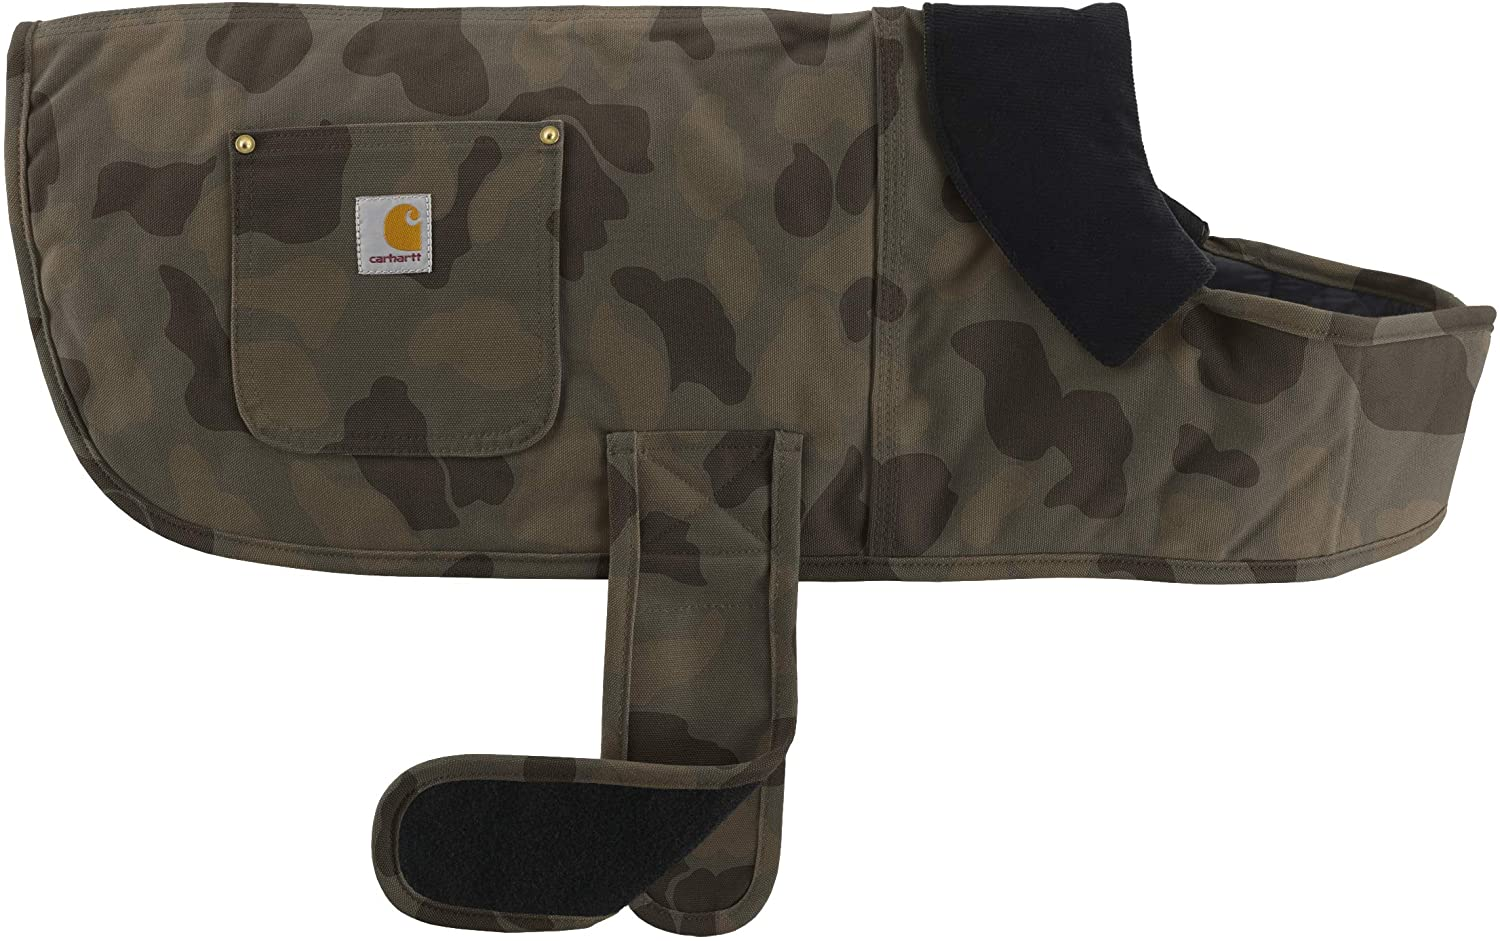 Carhartt Pet Firm Duck Insulated Coat Chore Dog Sale price Max 67% OFF